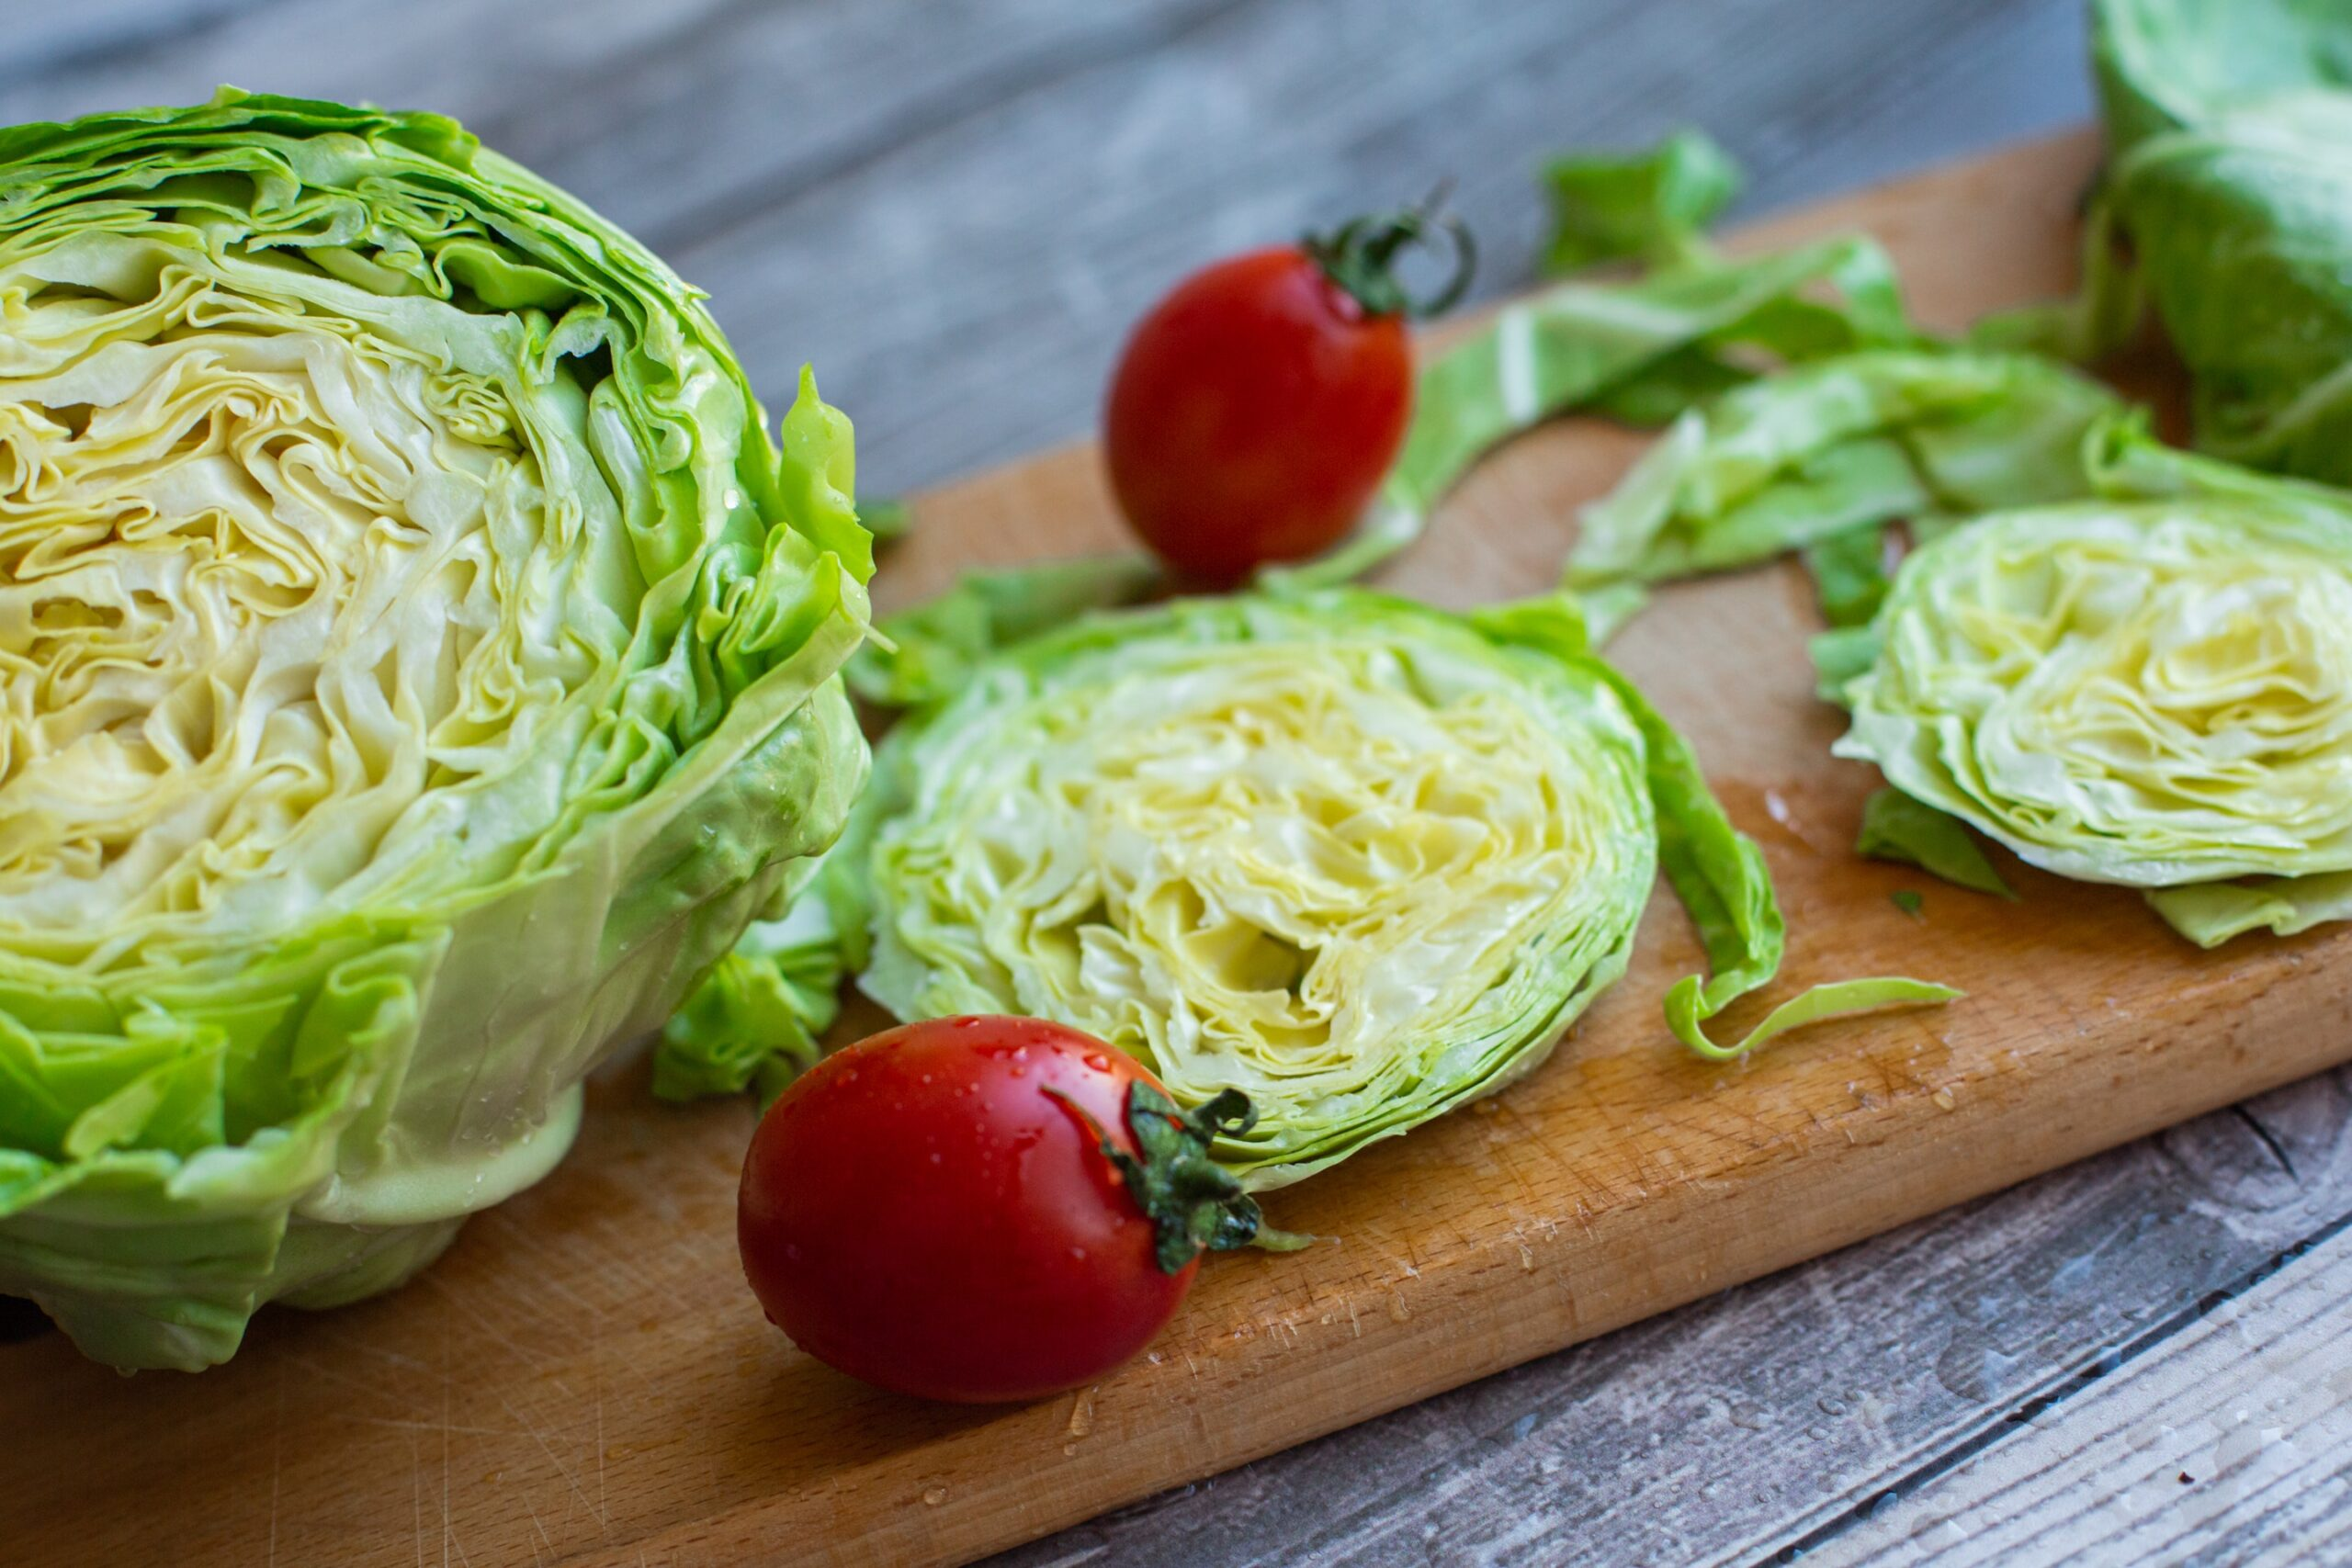 Is Lettuce Good For Weight Loss?